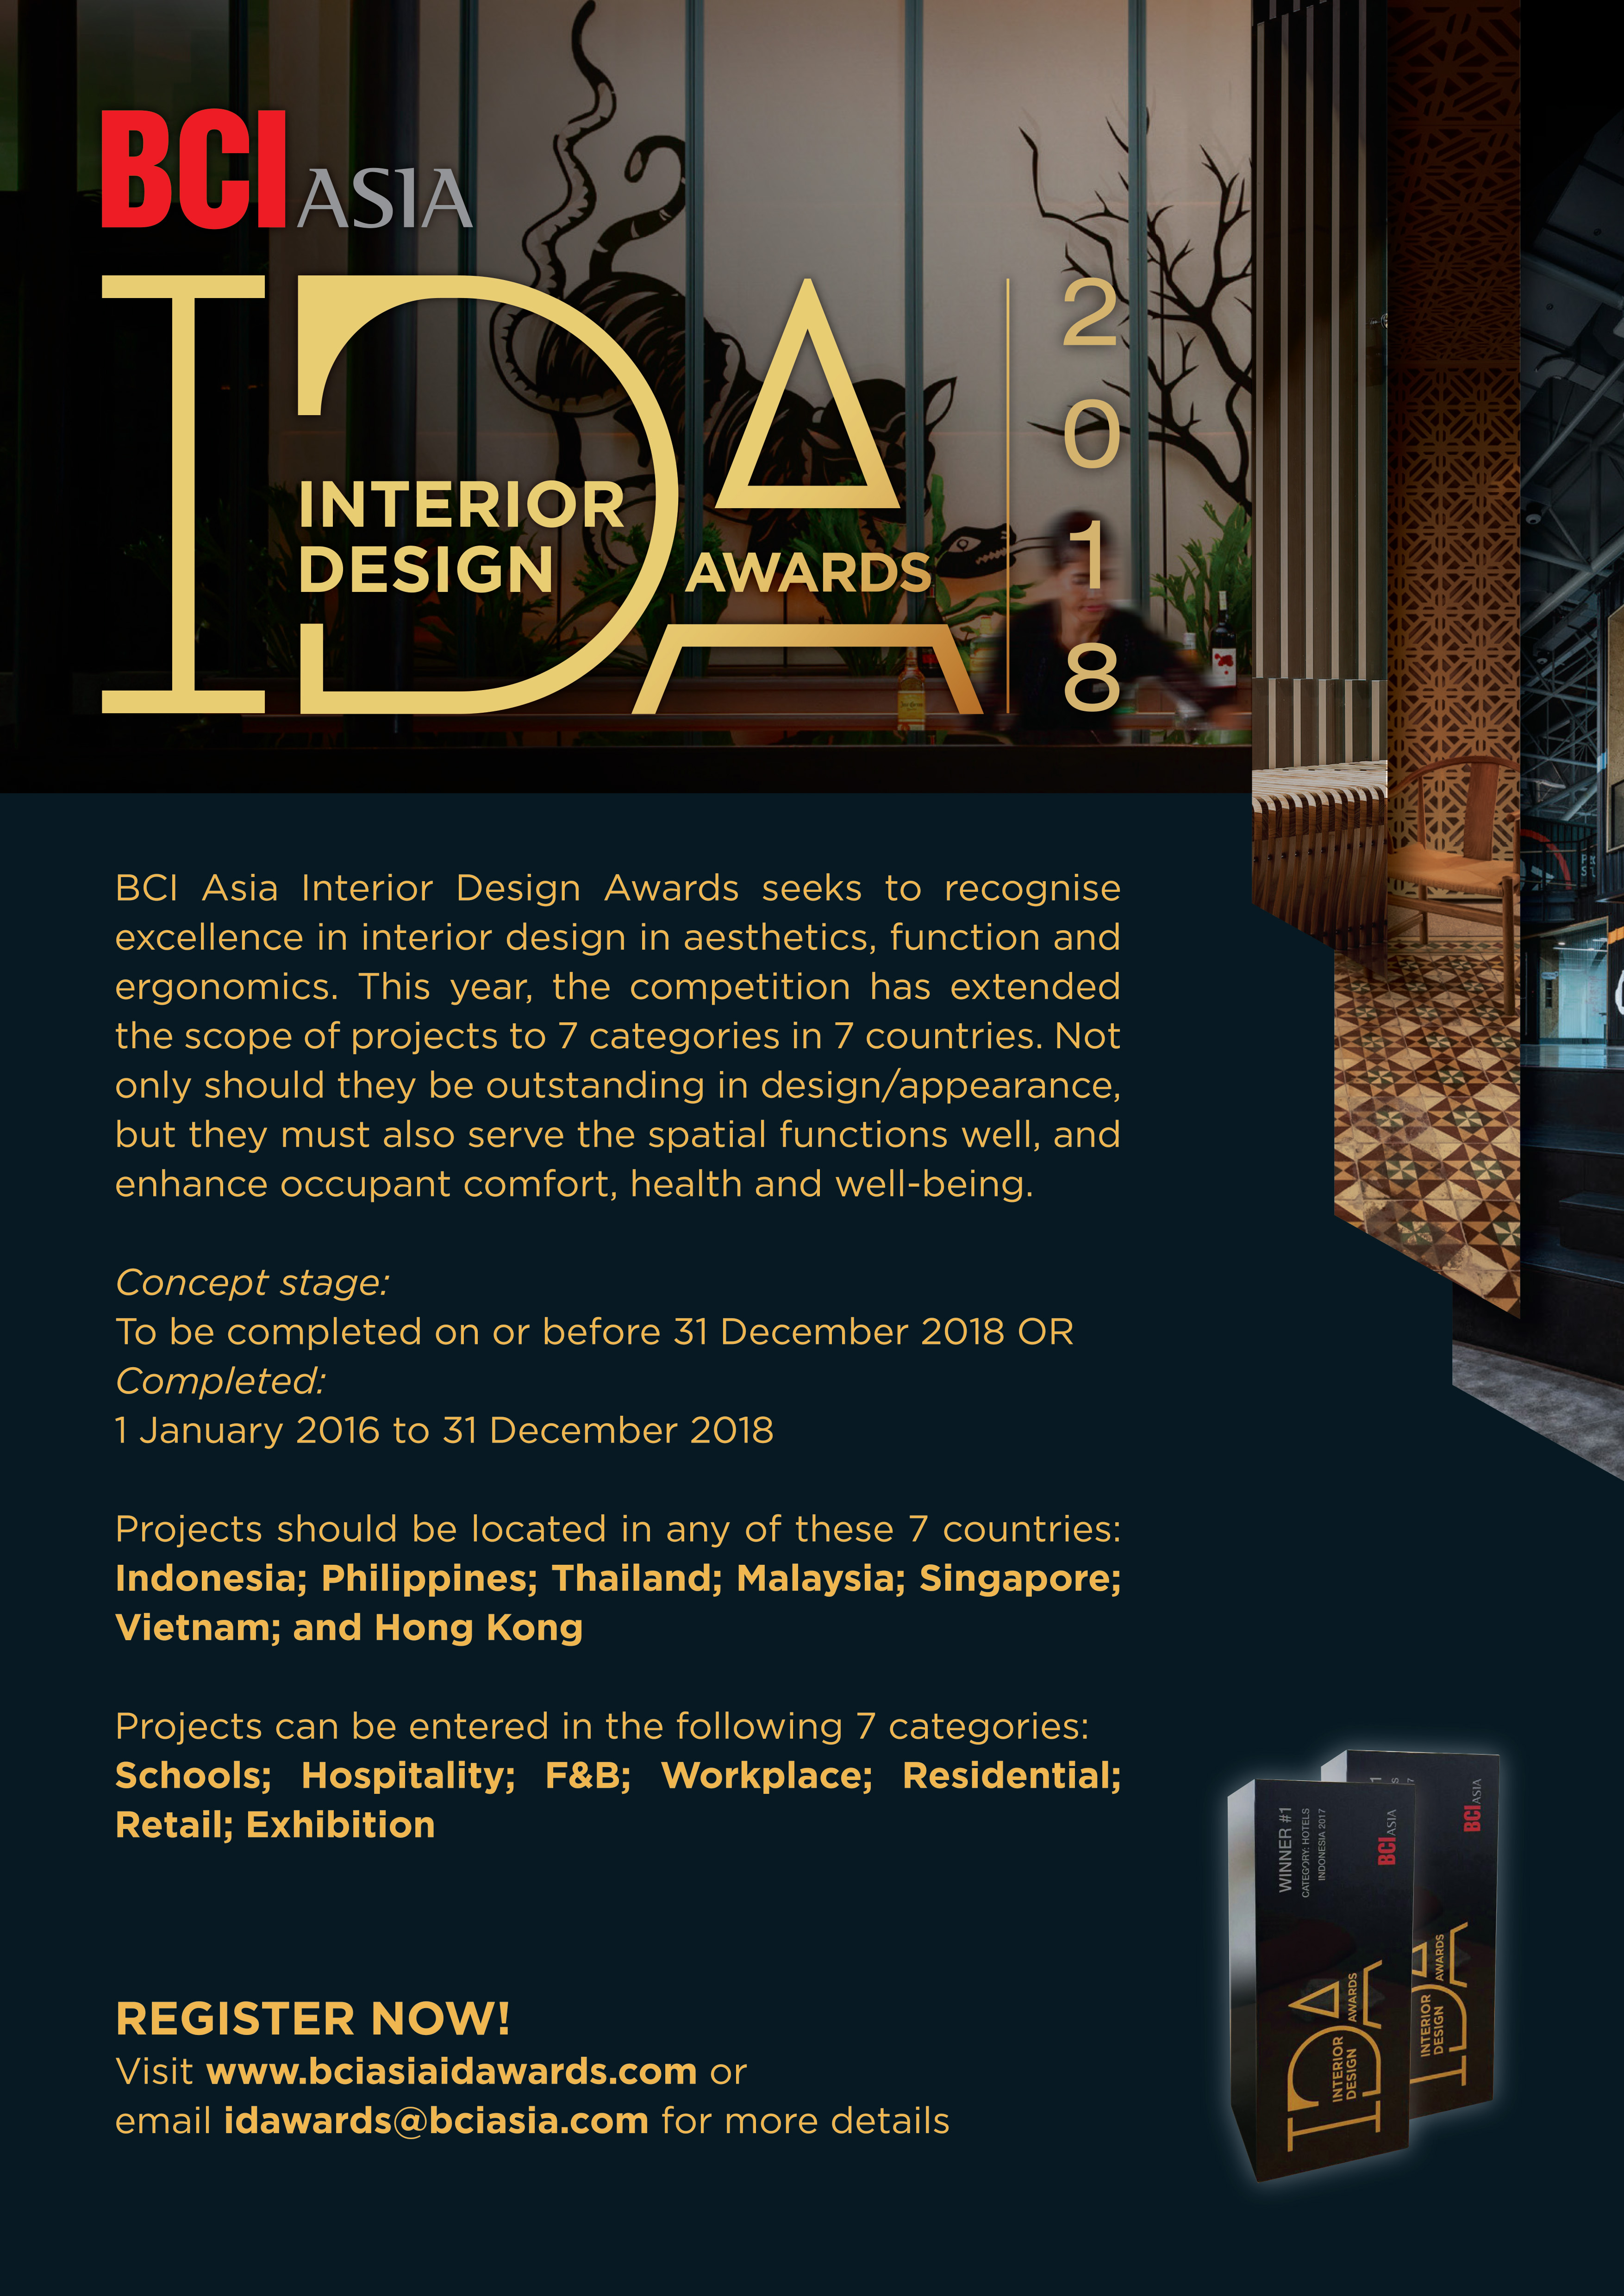 BCI Asia Interior Design Awards